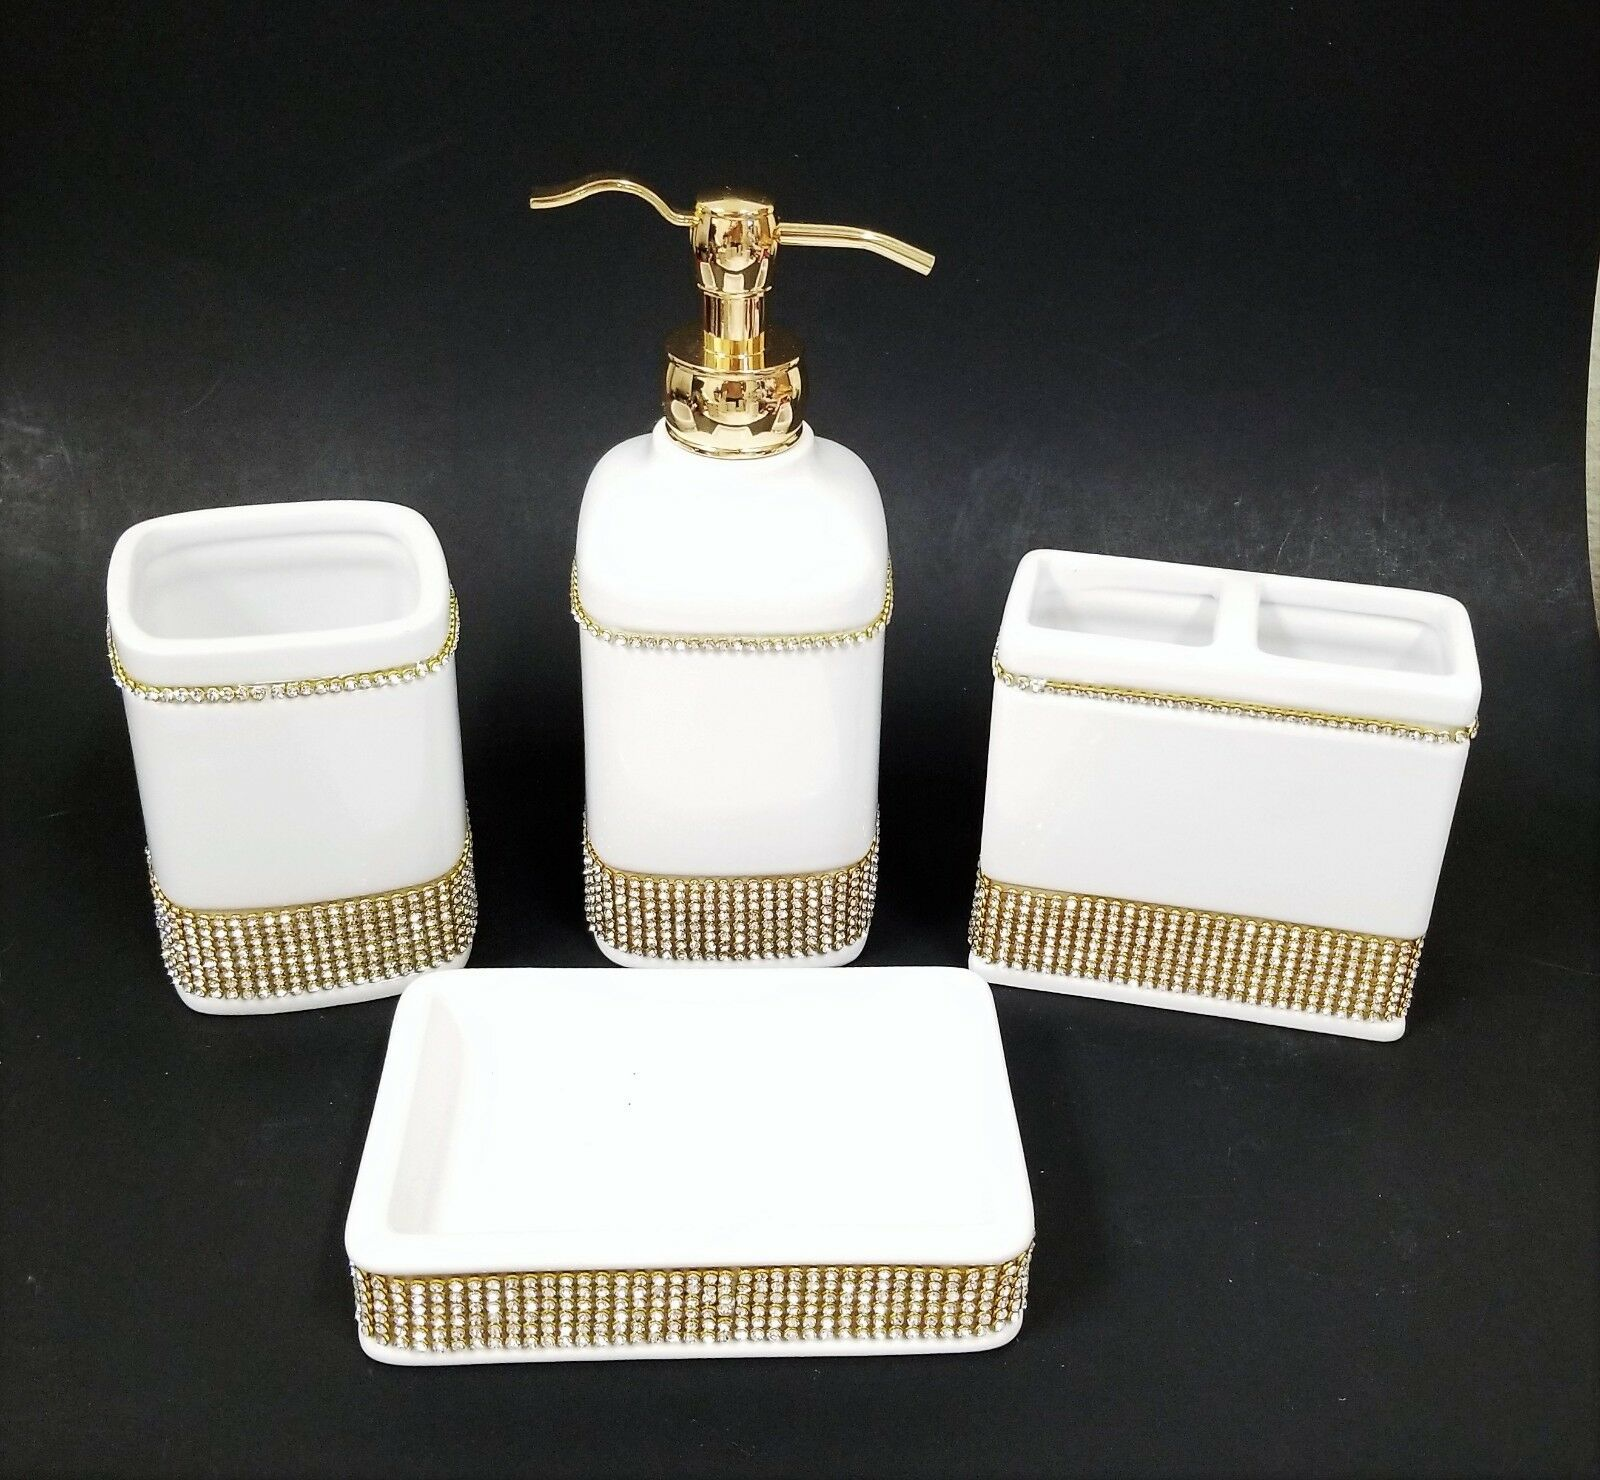 NEW 4 PC SET Weiß CERAMIC+Gold CRYSTALS DISPENSER+DISH+TUMBLER+TOOTHBRUSH HOLDE